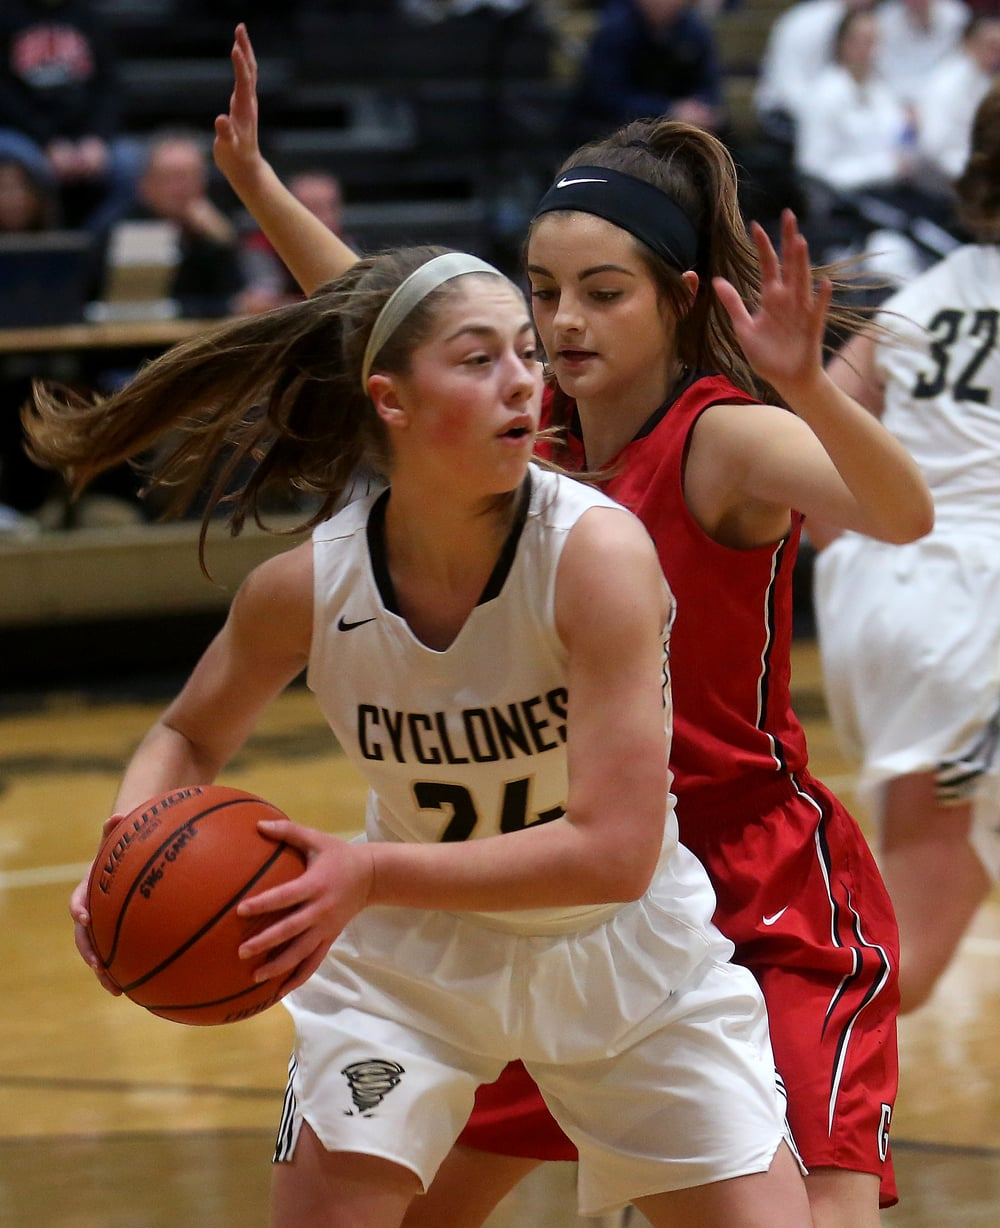 Cyclones player Anna Lowis looks to get the ball around Titans defender Lexie Iacono during first half play. David Spencer/The State Journal Register